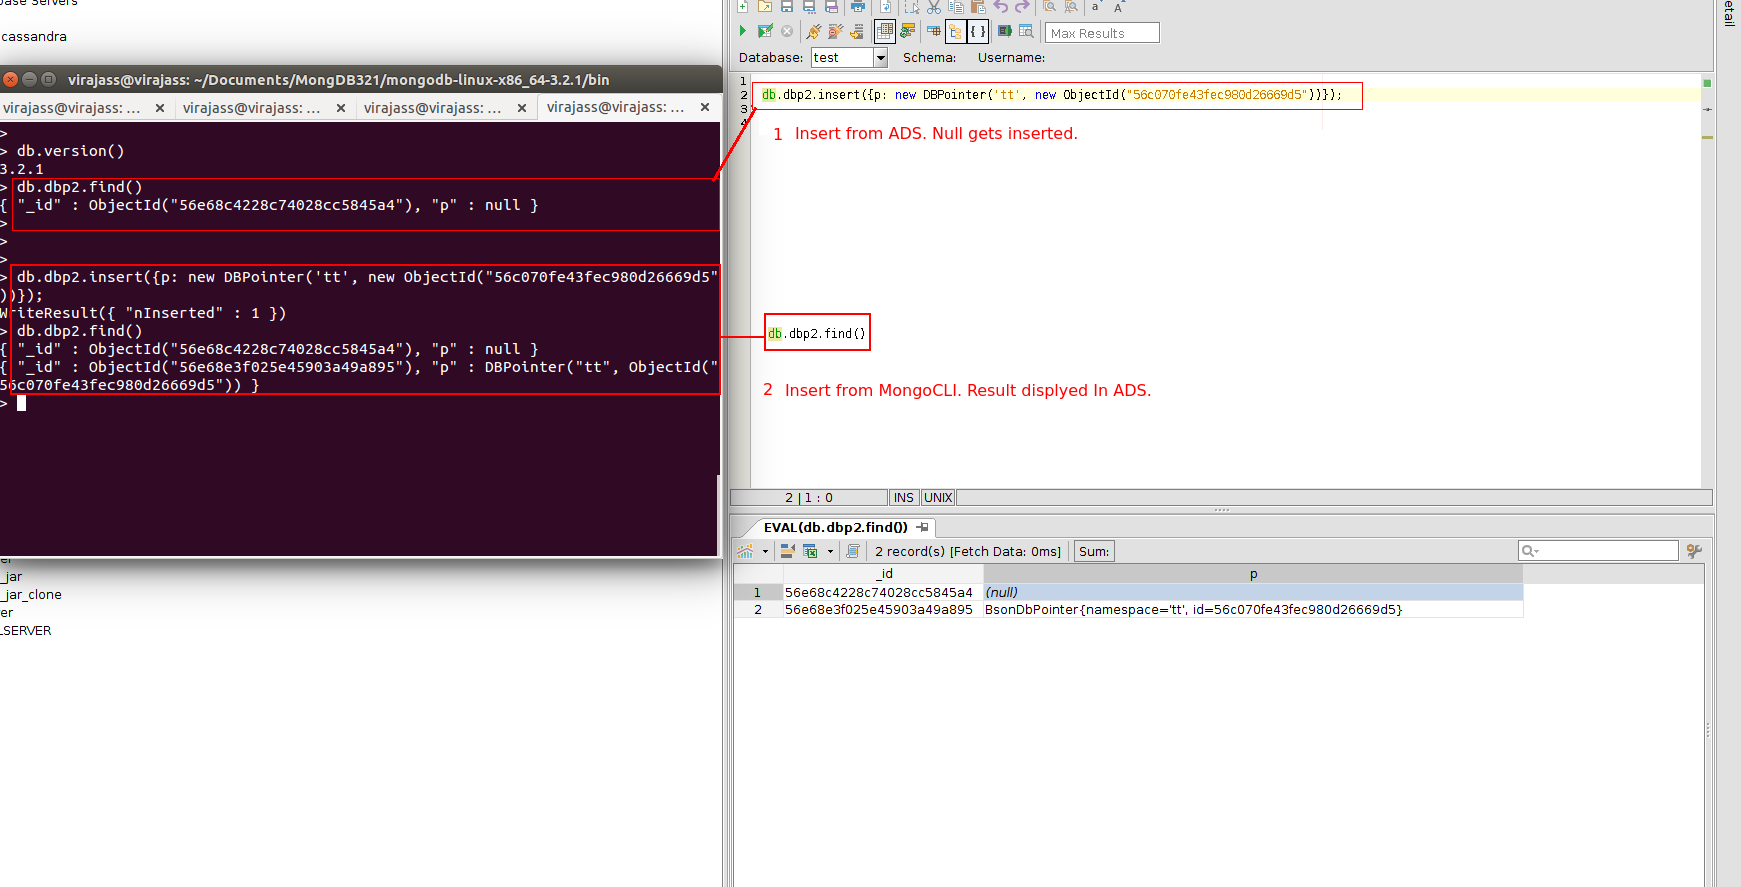 14330: Can not insert value for DBPointer data type from ADS